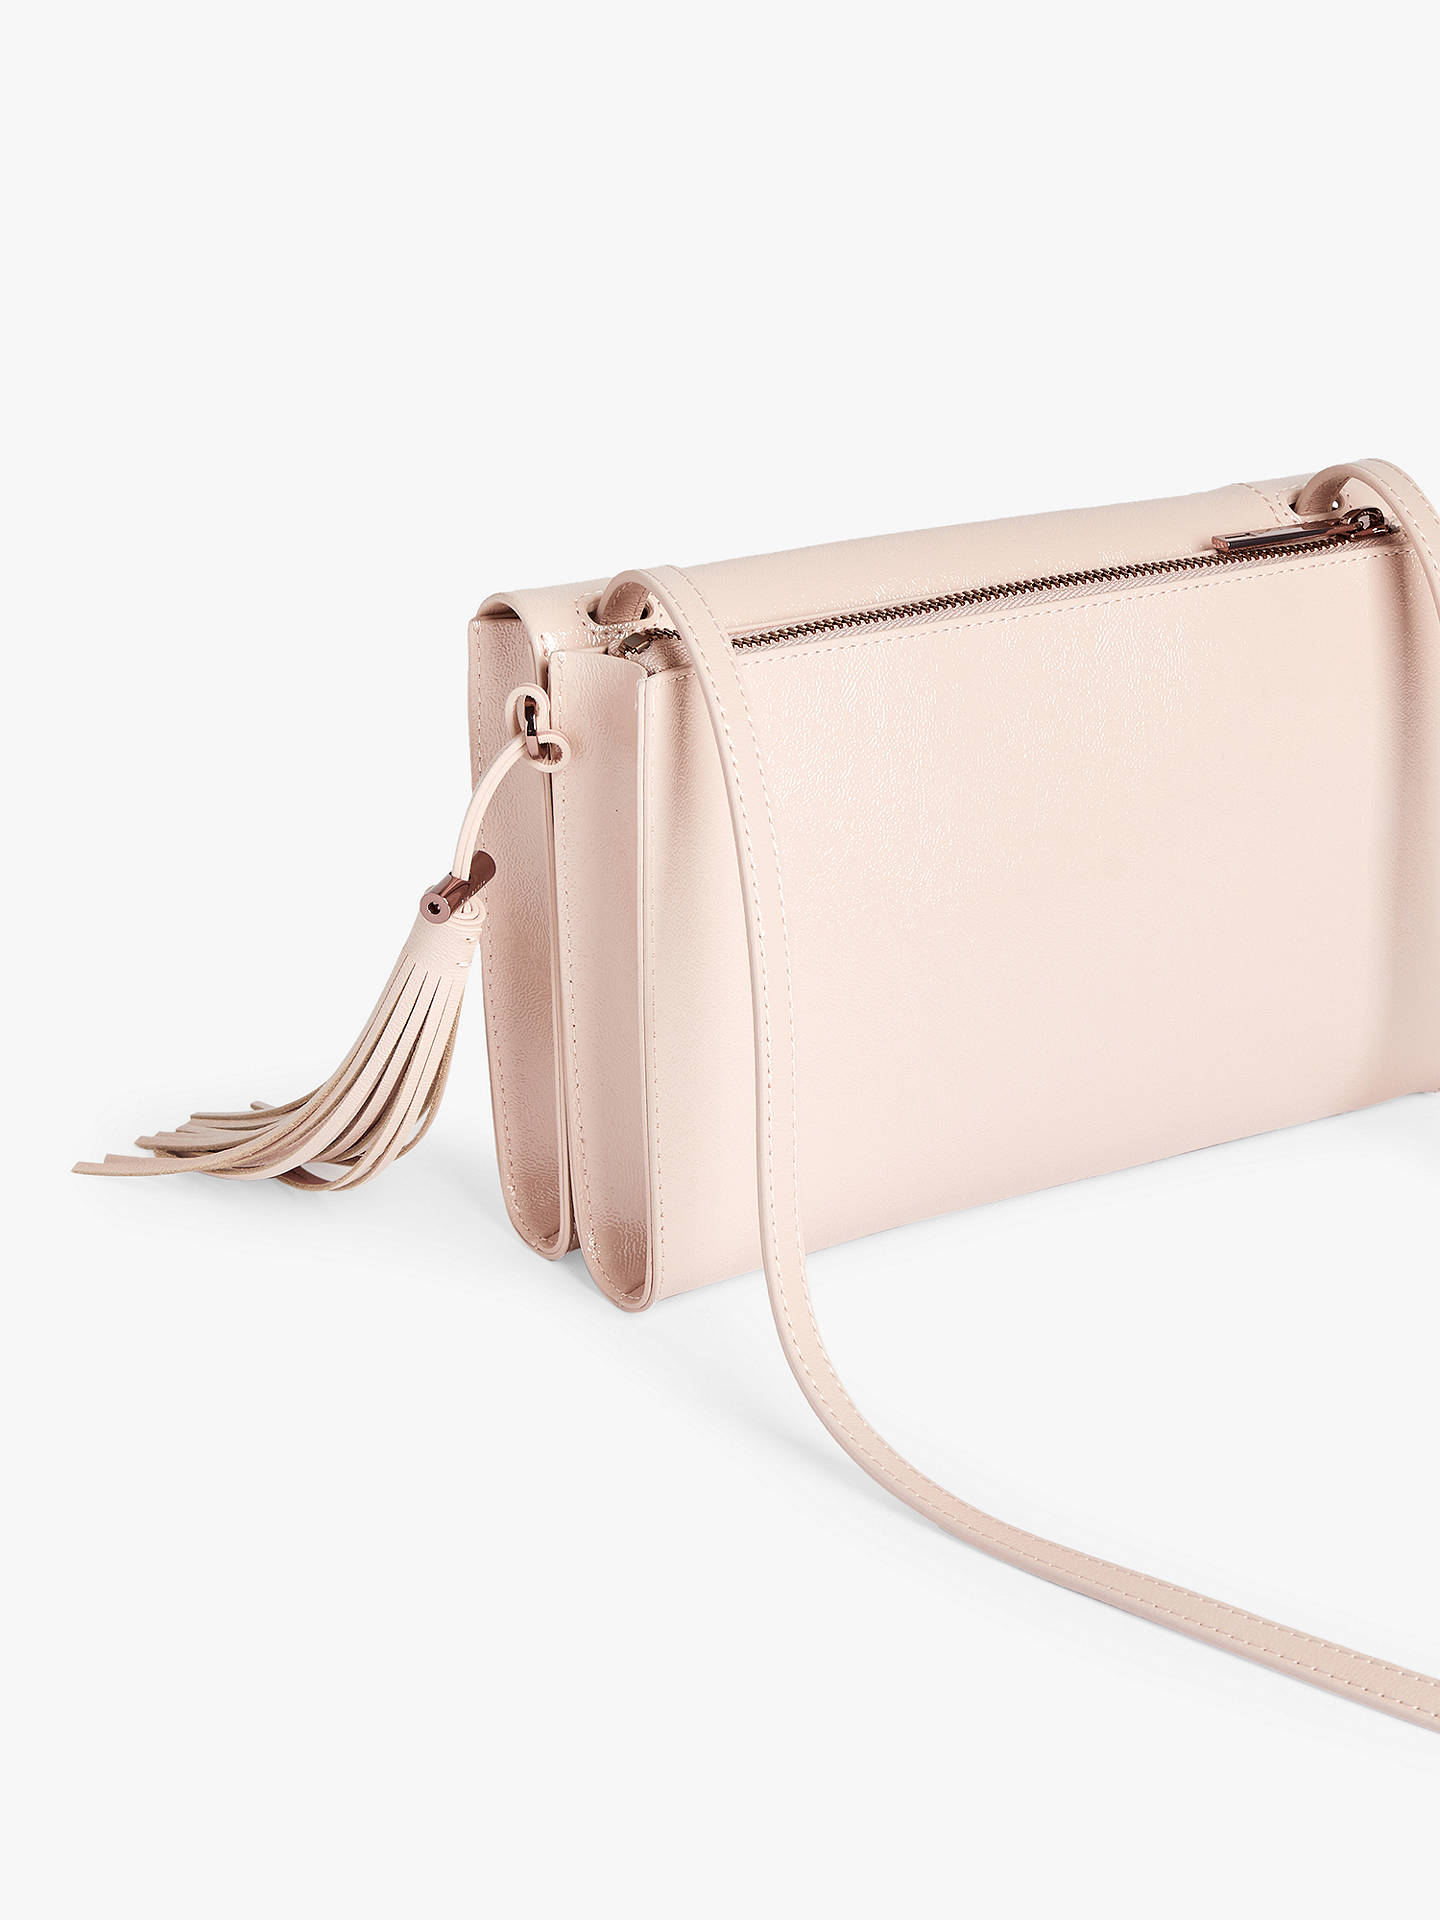 pink nude over body.bag